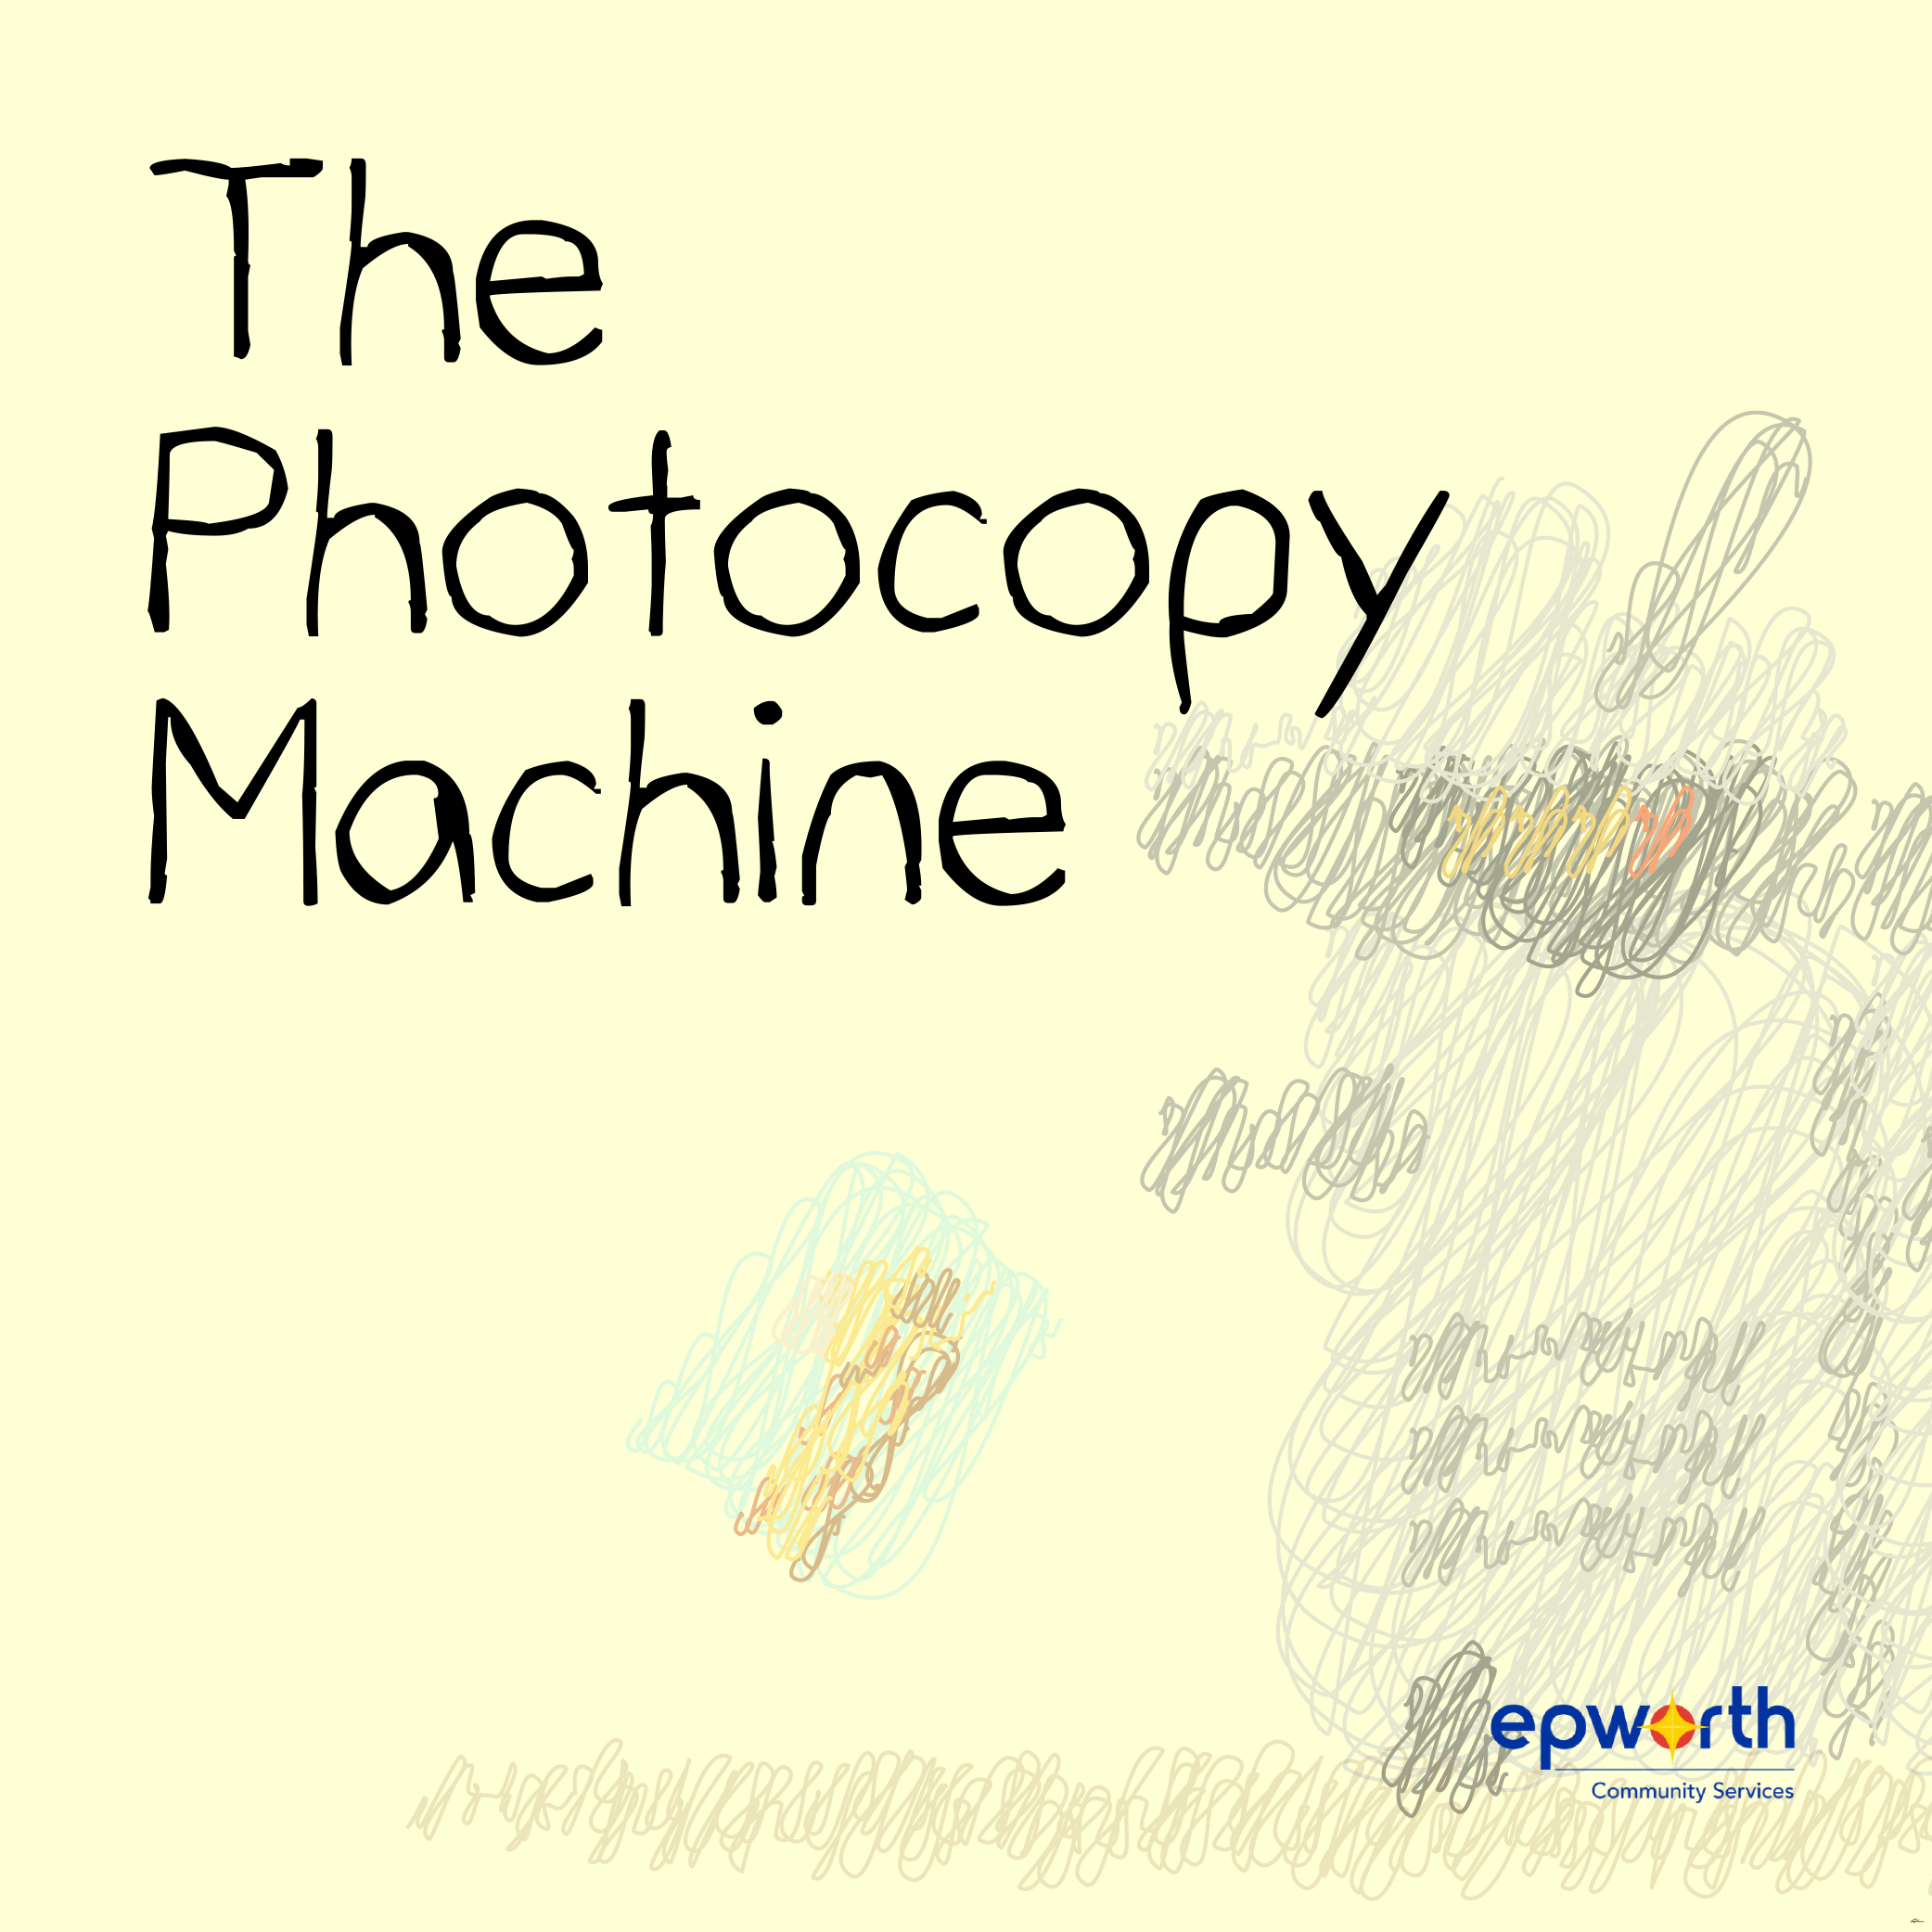 The Photocopy Machine